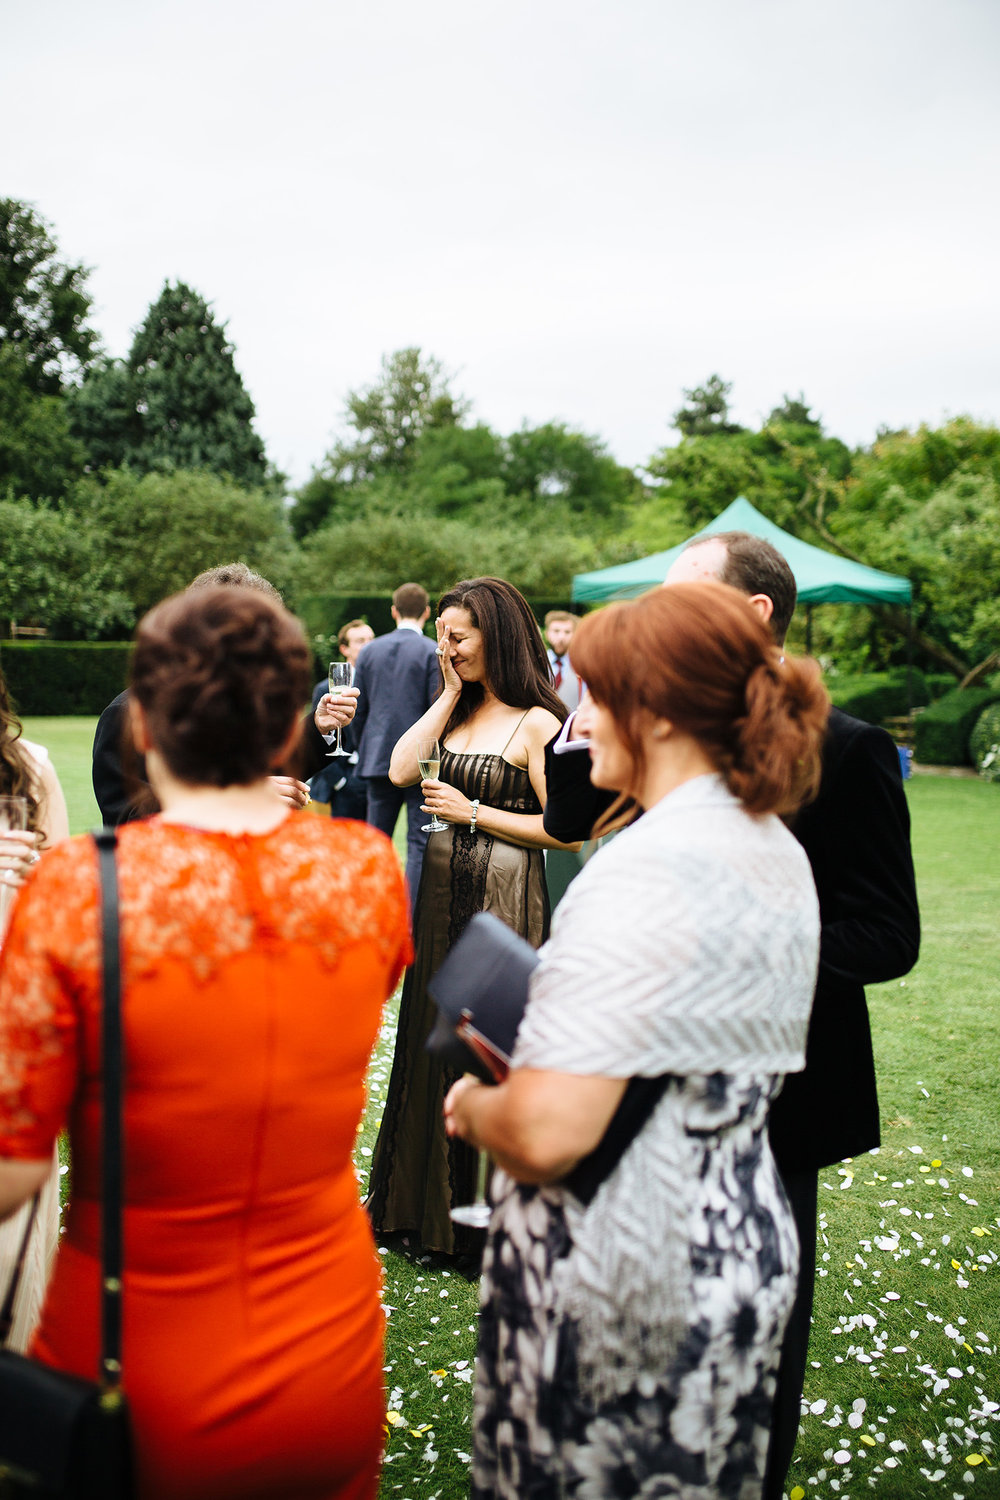 CHILDERLEY HALL CAMBRIDGE WEDDING 60.JPG